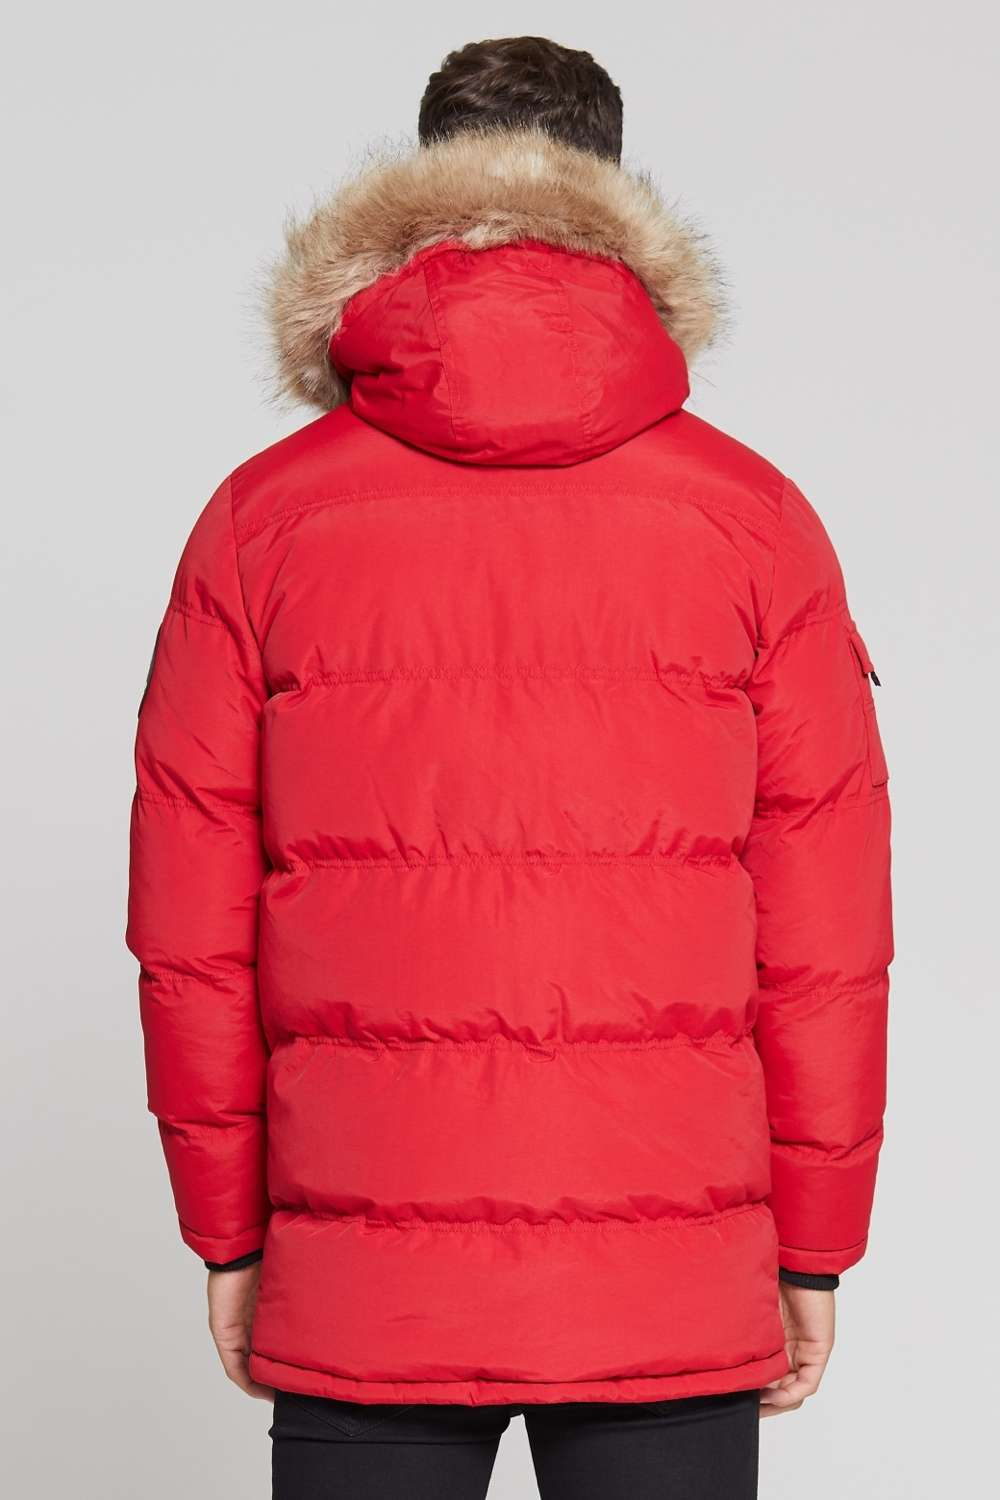 Good For Nothing Glacier Parka Jacket - Red - 4